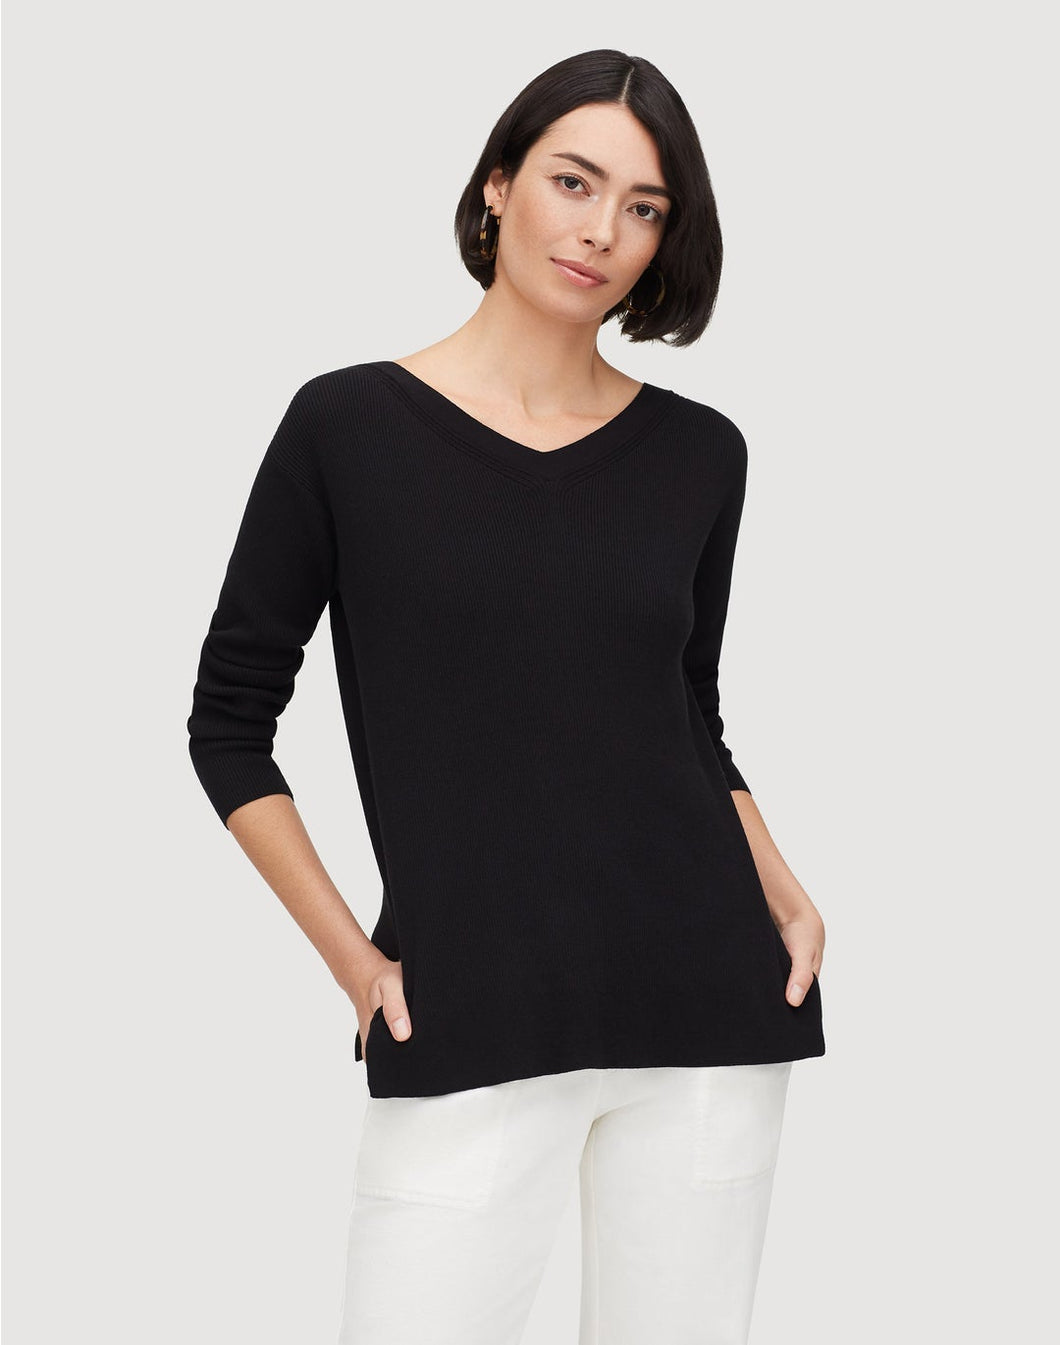 Matte Crepe Wide V-Neck Relaxed Sweater